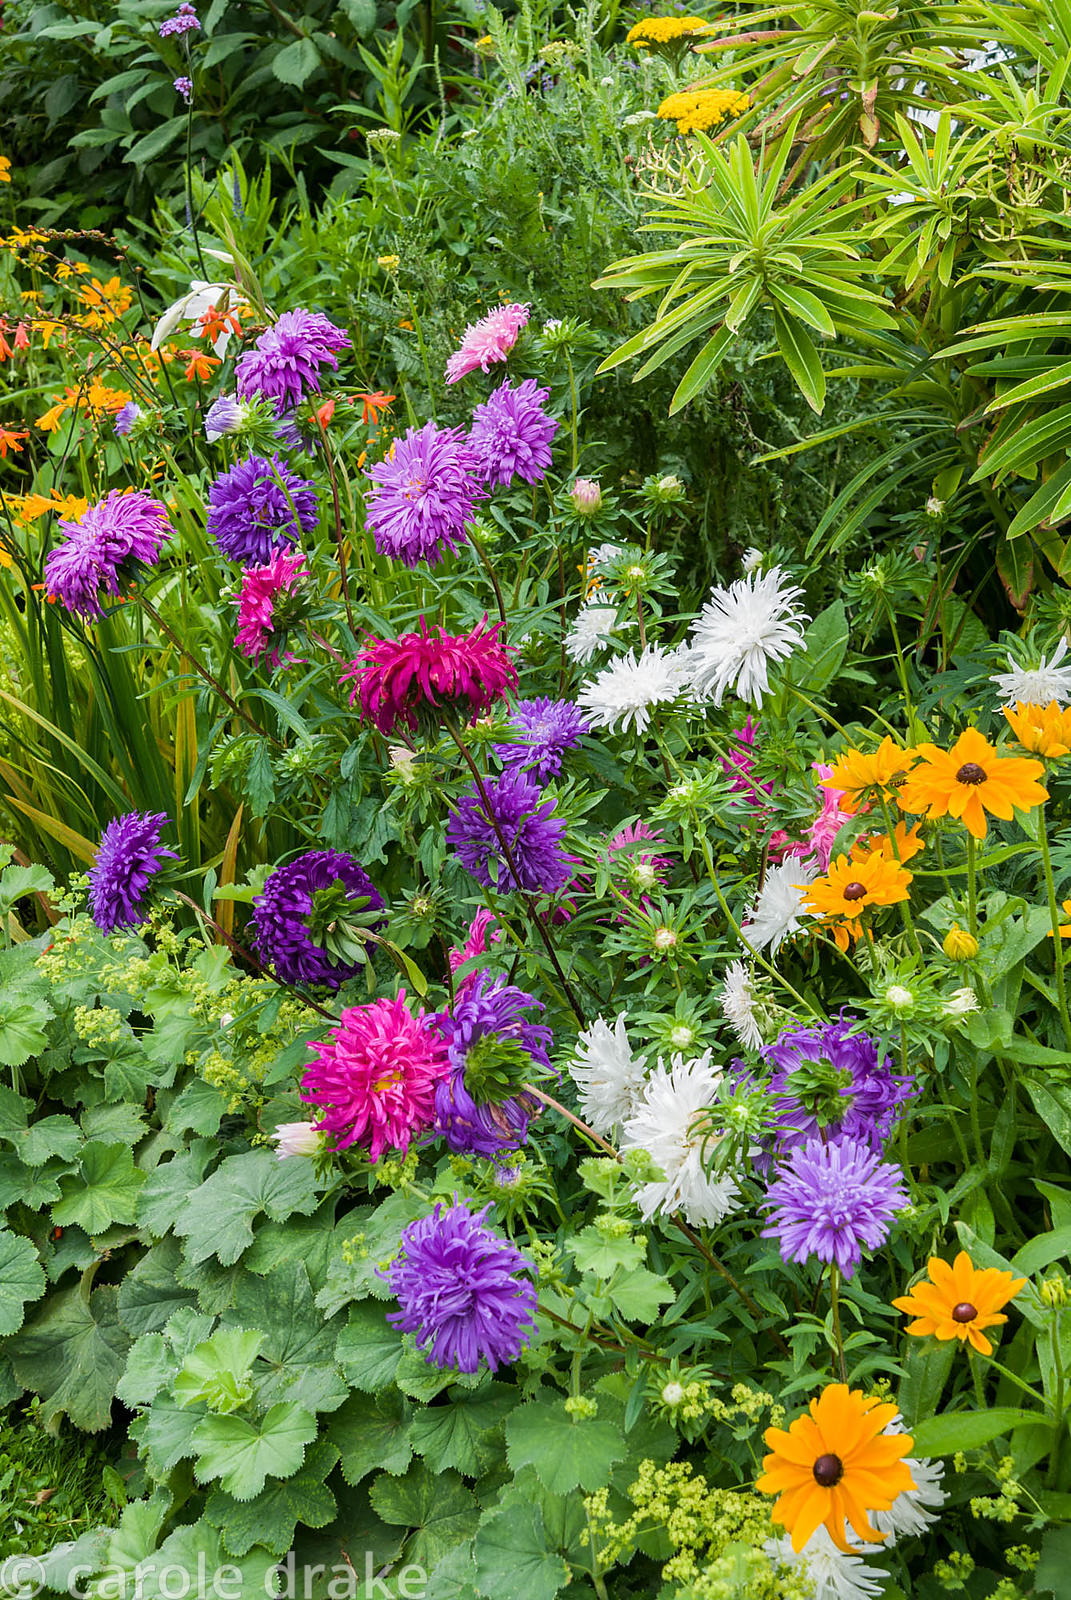 Annual Aster 'Ostrich Plume Mixed' with Rudbeckia 'Marmalade' in ornamental border edged with Alchemilla mollis. The Shute, n...